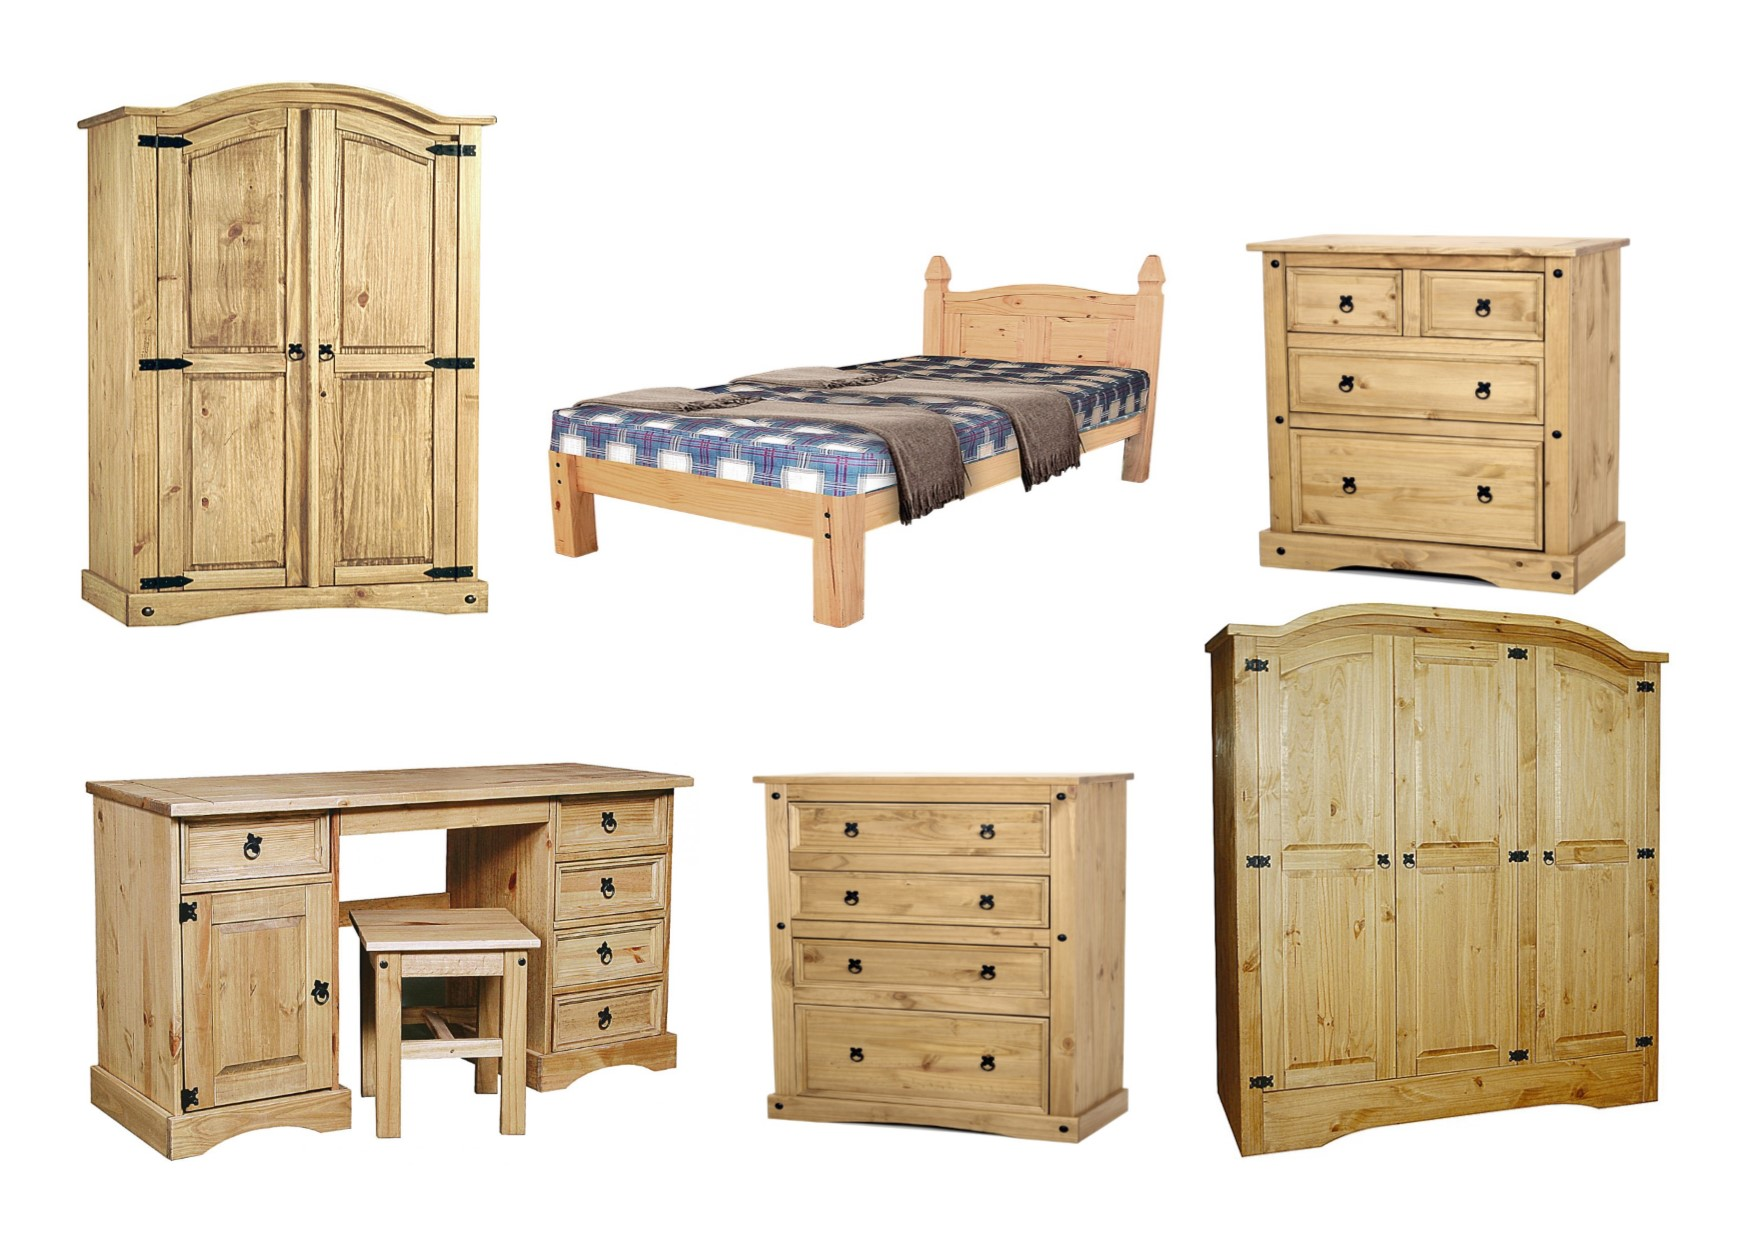 corona solid distressed waxed pine bedroom furniture. Black Bedroom Furniture Sets. Home Design Ideas